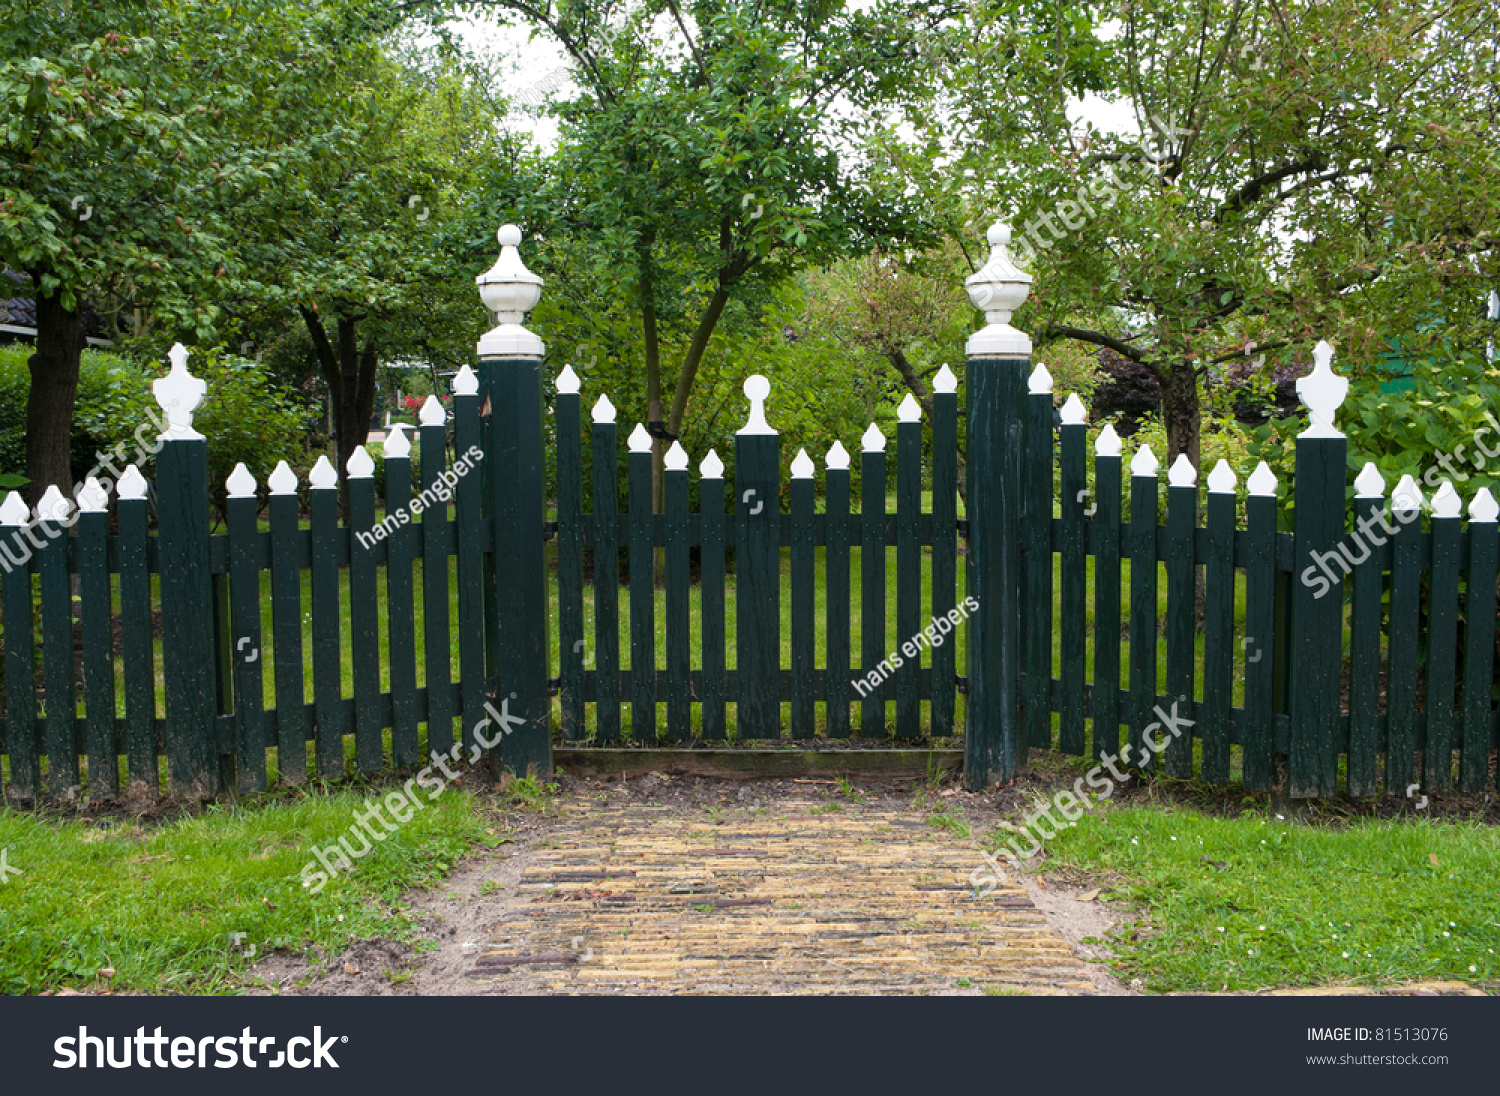 Green Wooden Picket Fence With White Tops Stock Photo